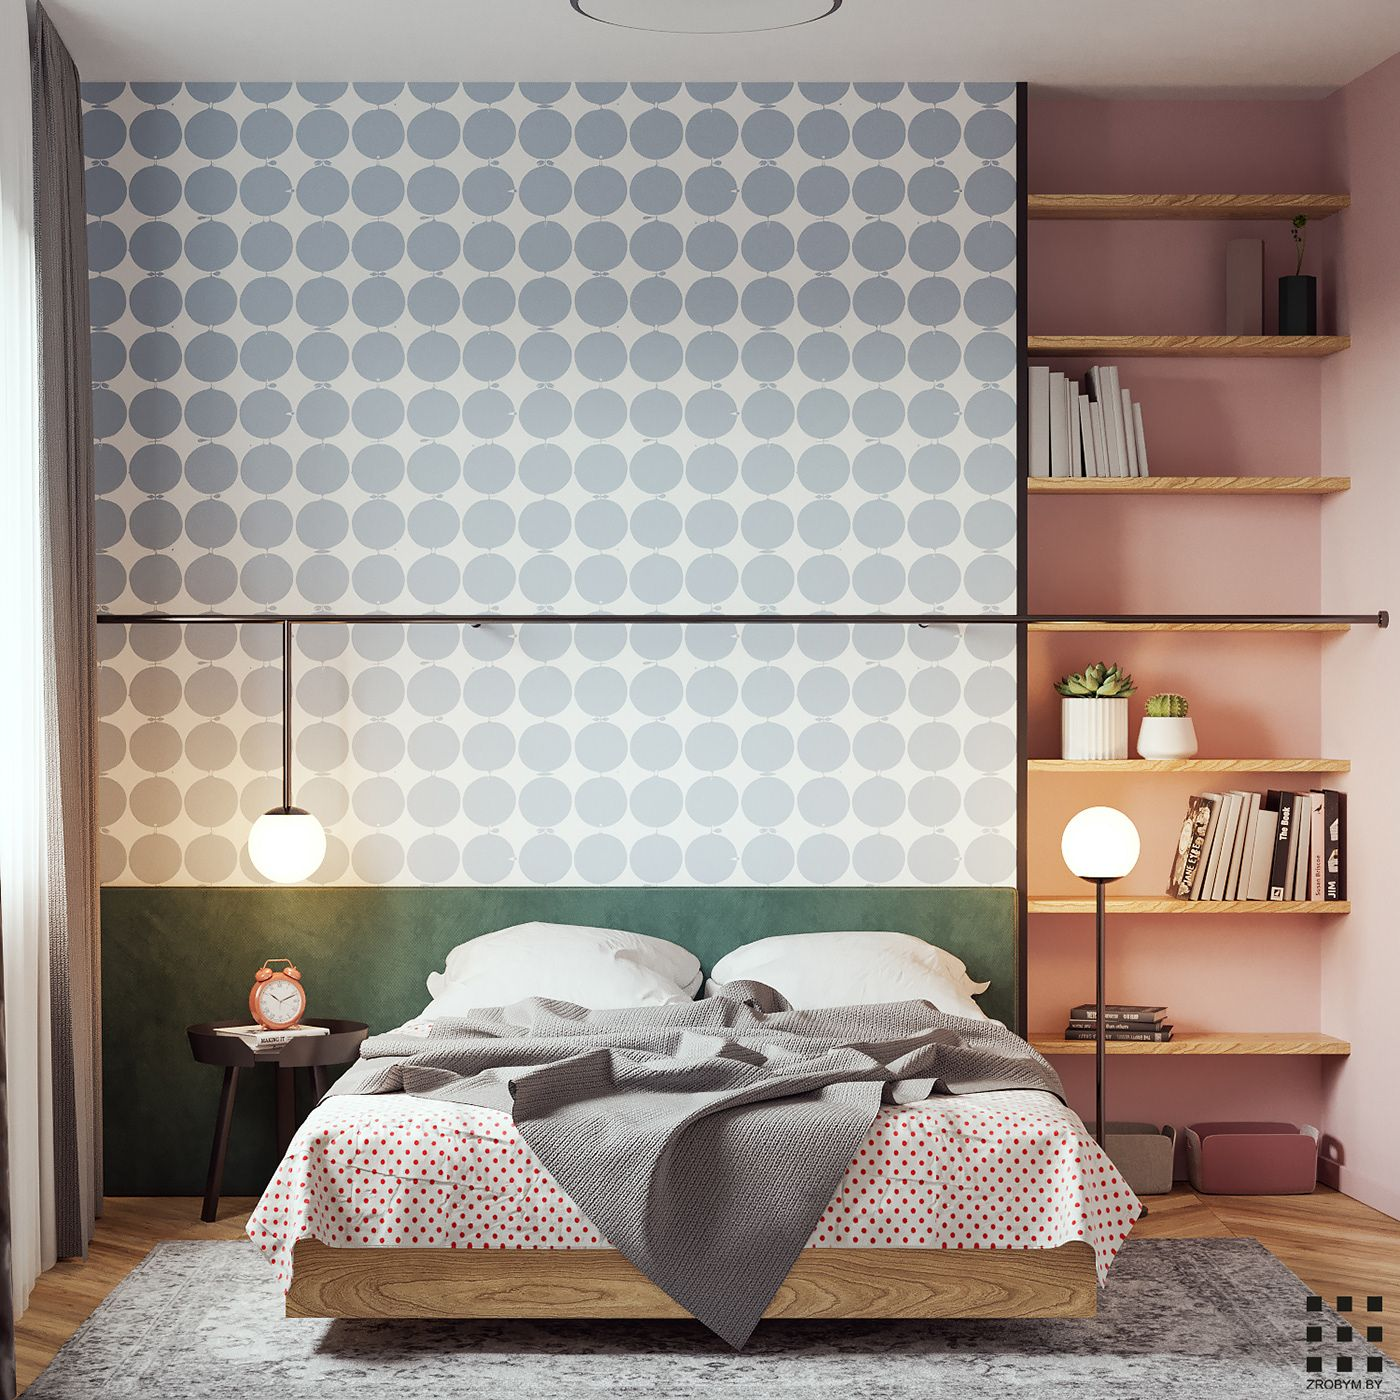 Bedroom In Contemporary Style On Behance: Apartment Design, Contemporary